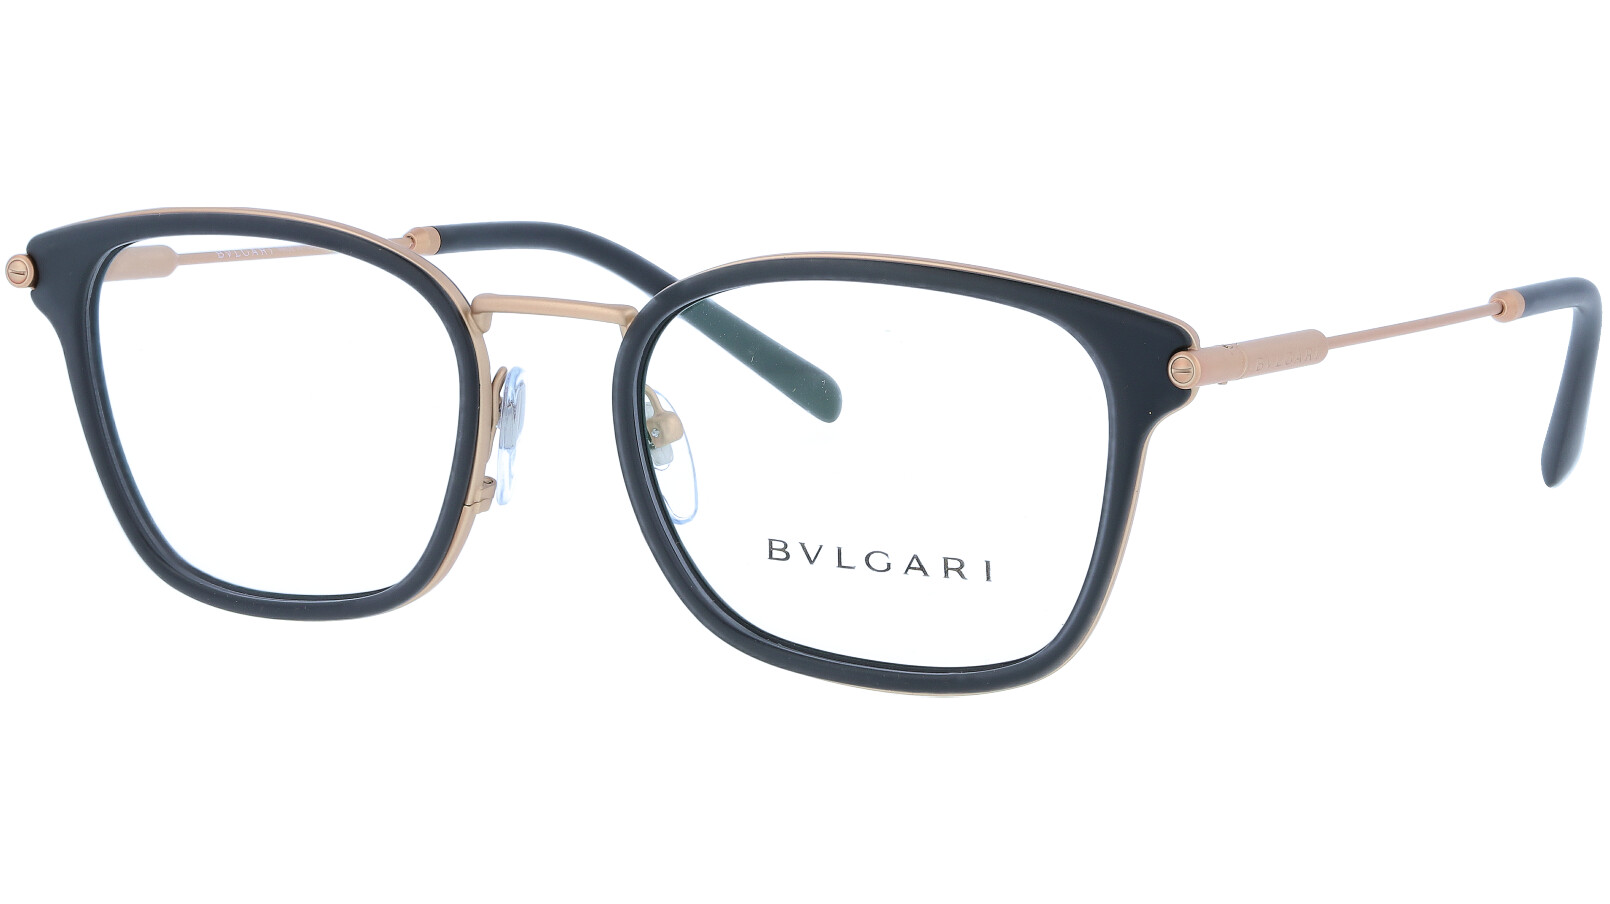 BVLGARI BV1095 2013 53 BLACK Glasses